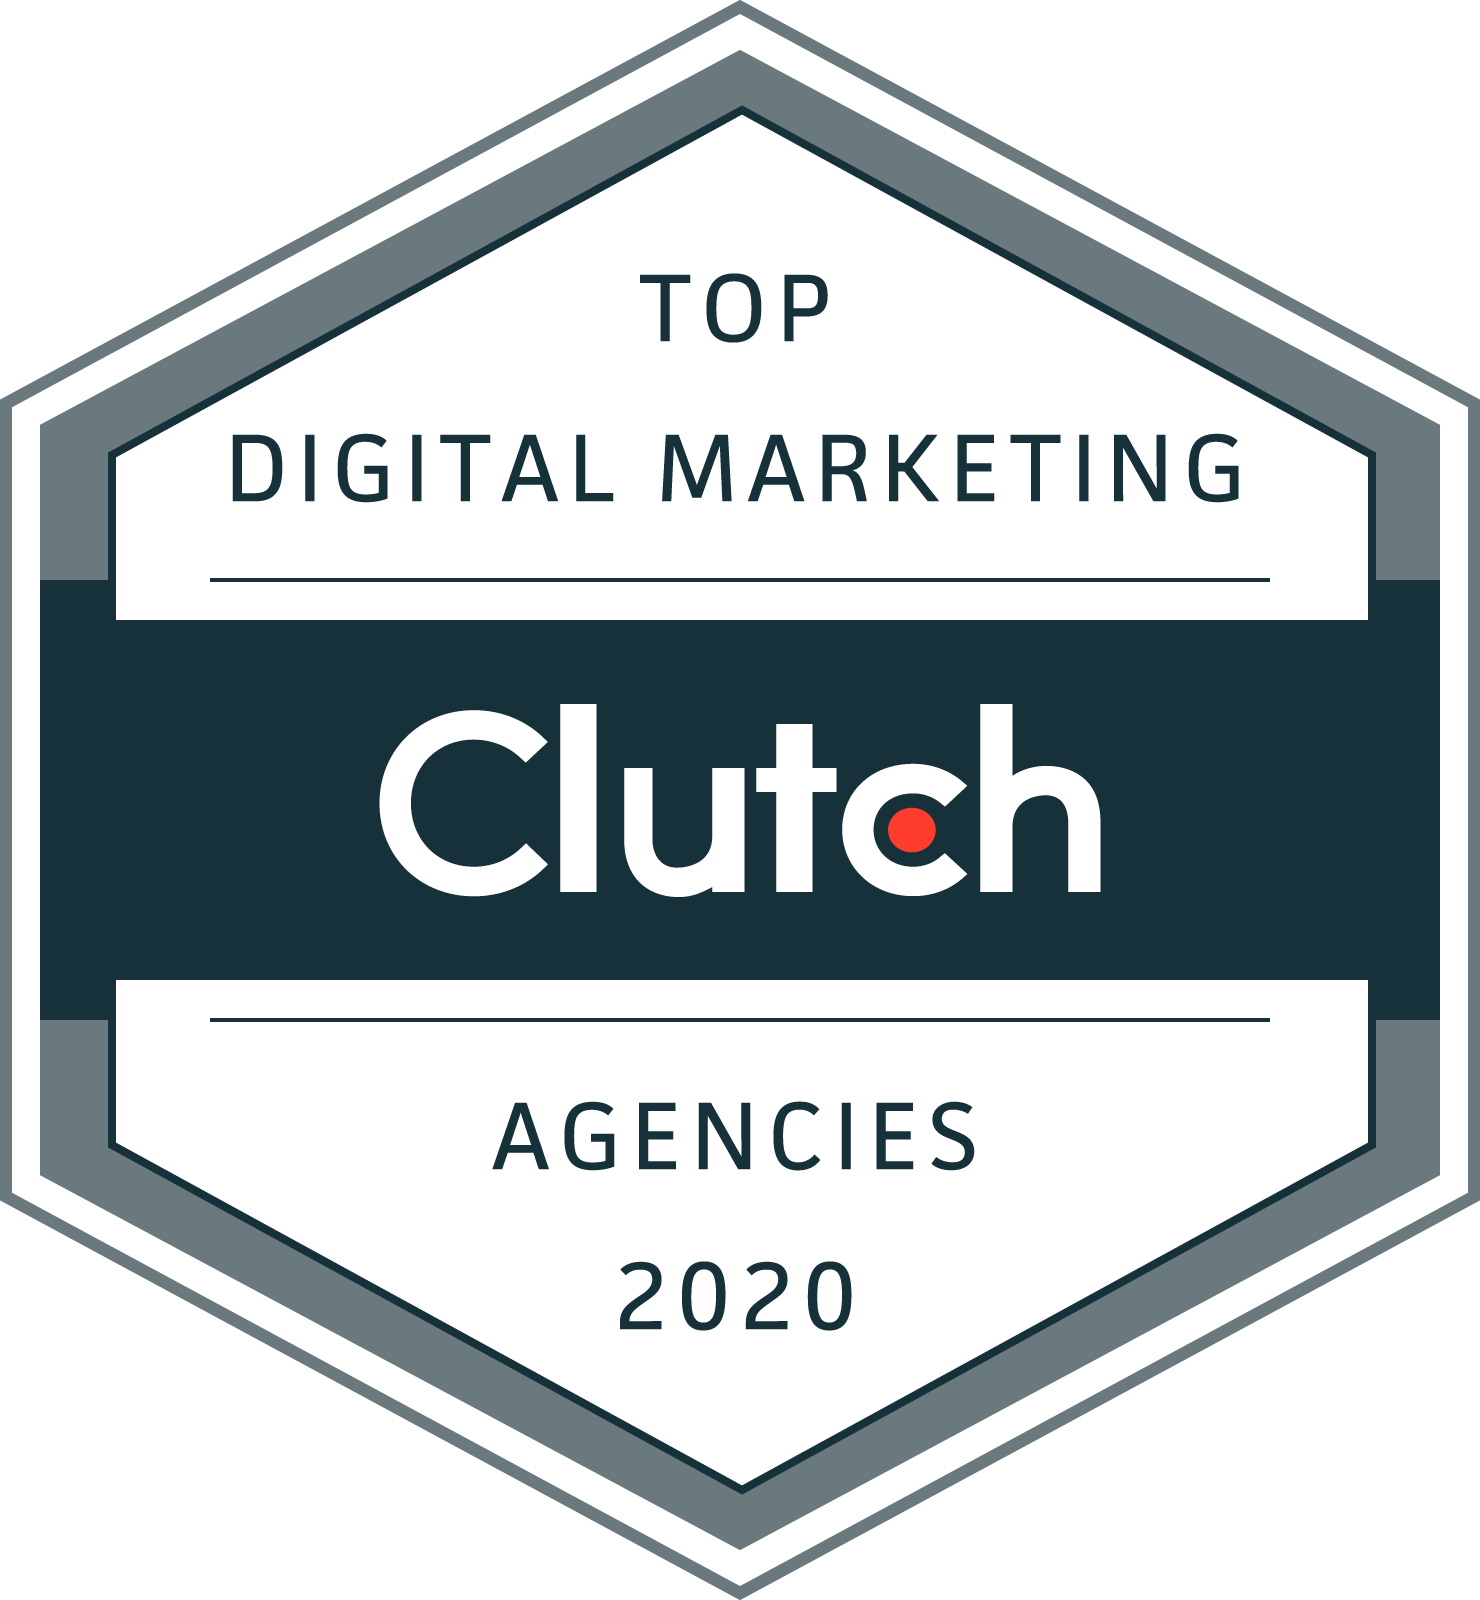 Digital Marketing Agencies 2020